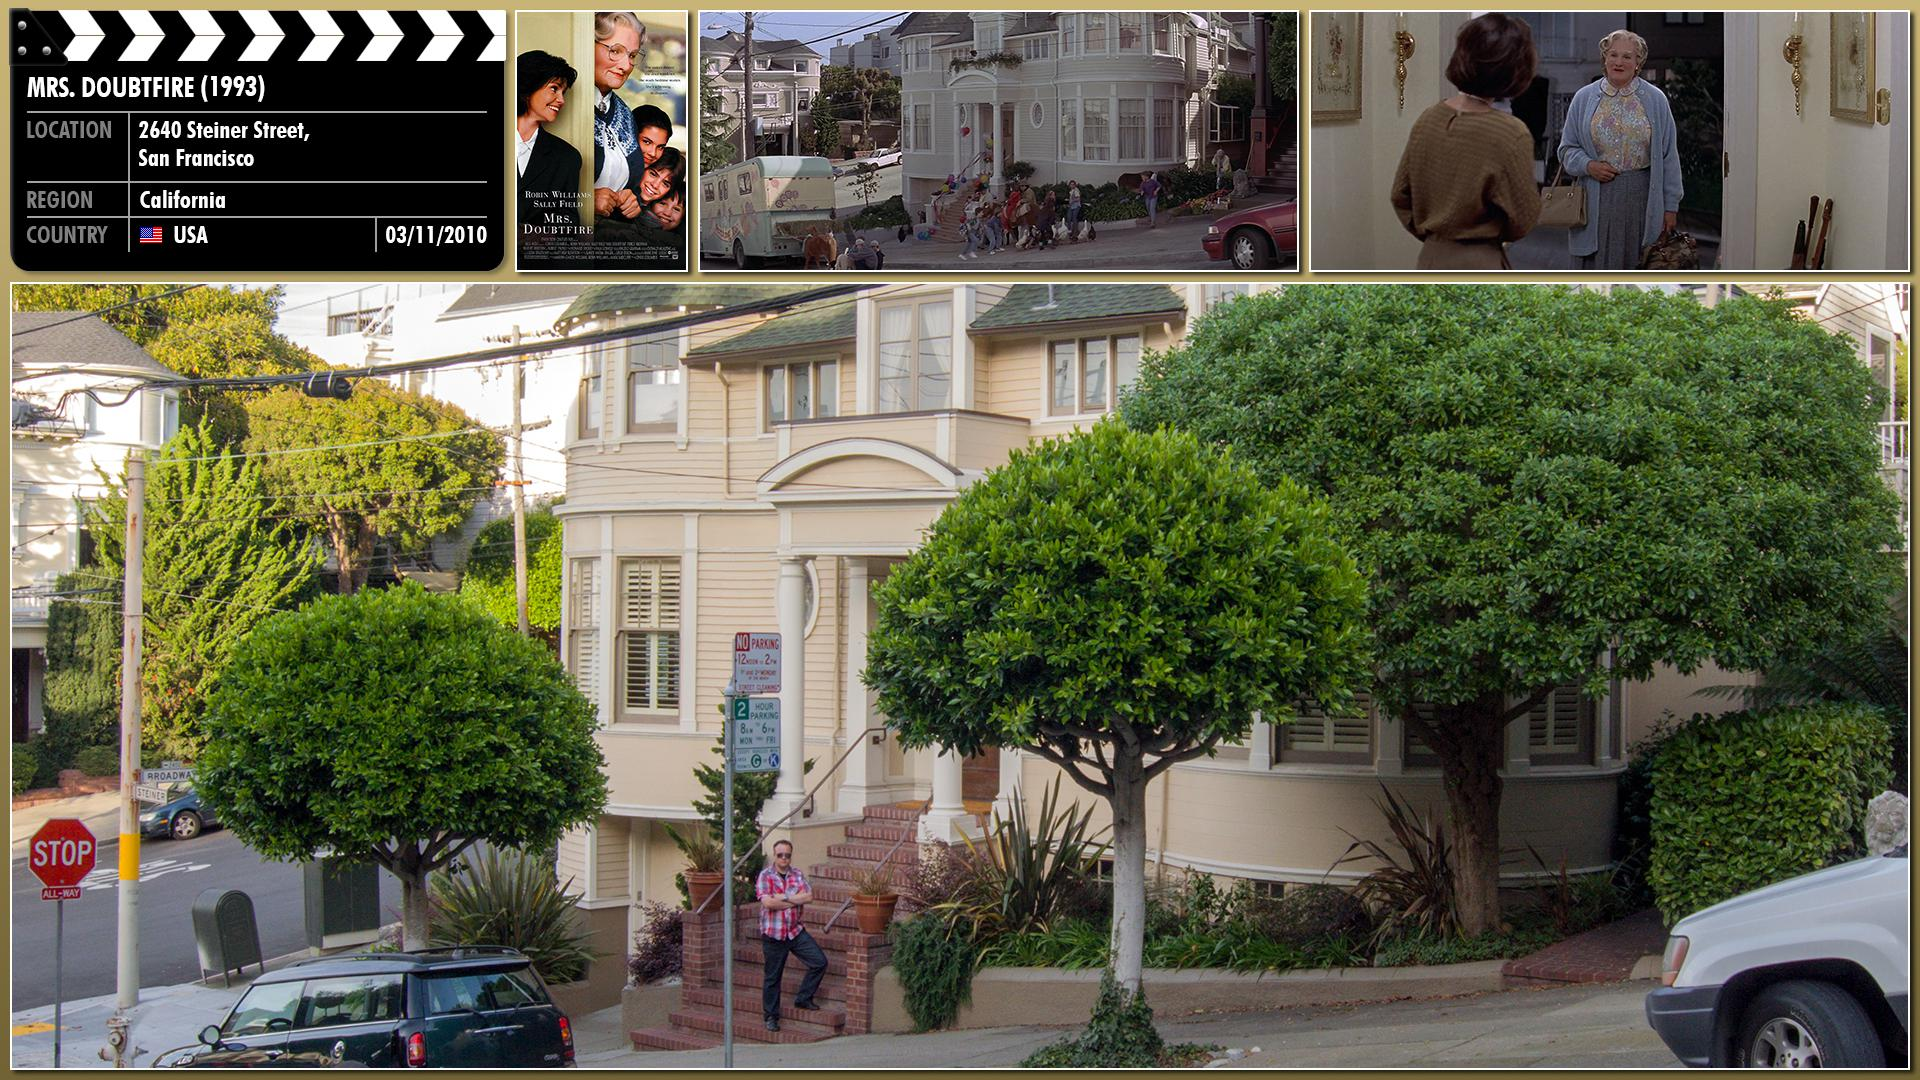 Filming location photo for Mrs. Doubtfire (1993) 1 of 1